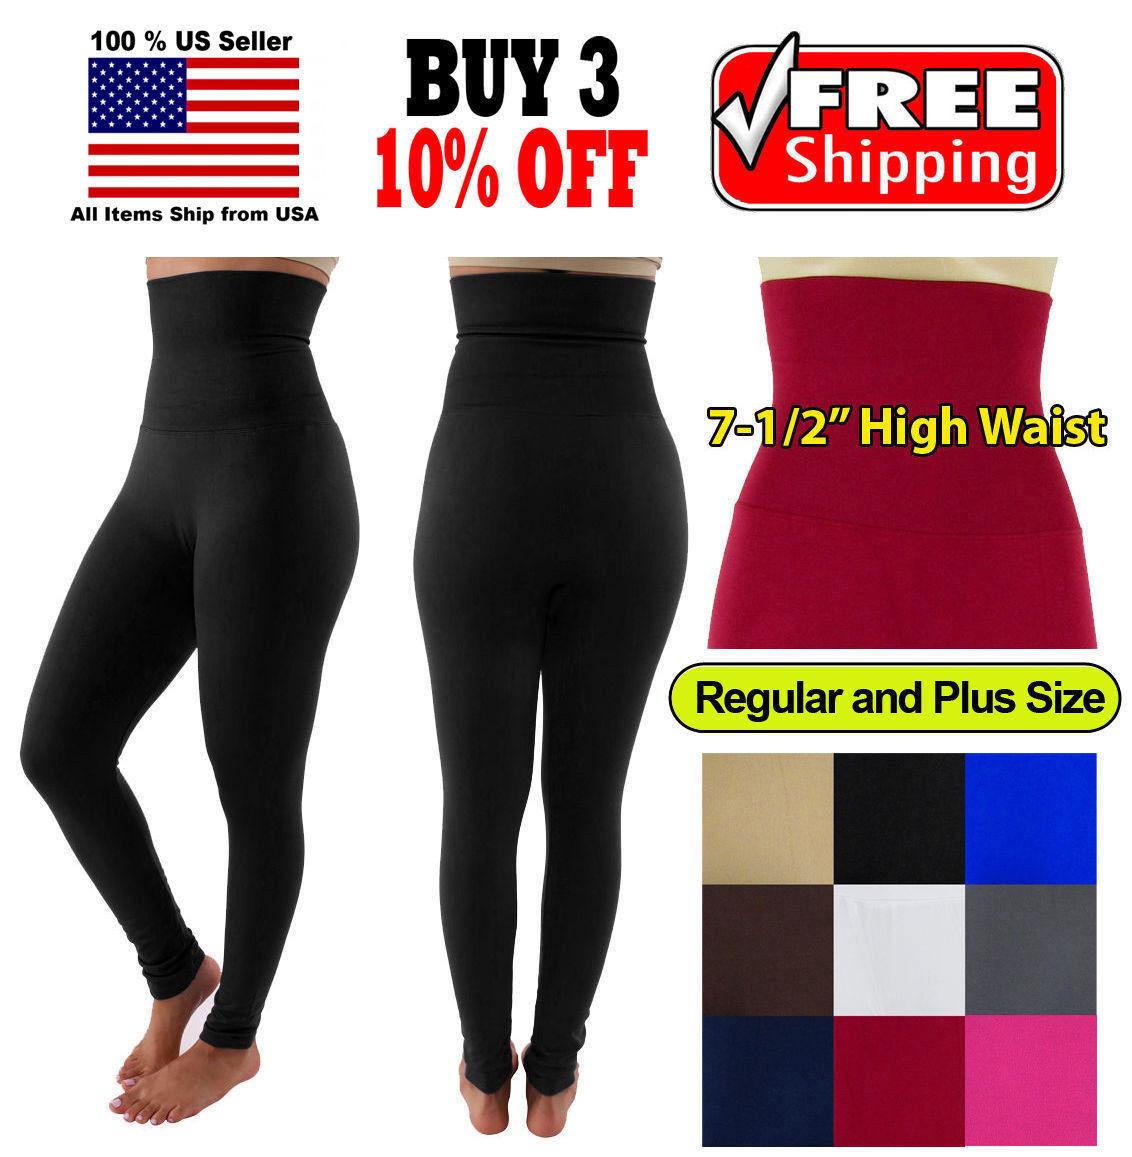 Women Slim High Waist Tummy Control Compression Body Shaper Fleece Leggings Clothing, Shoes & Accessories